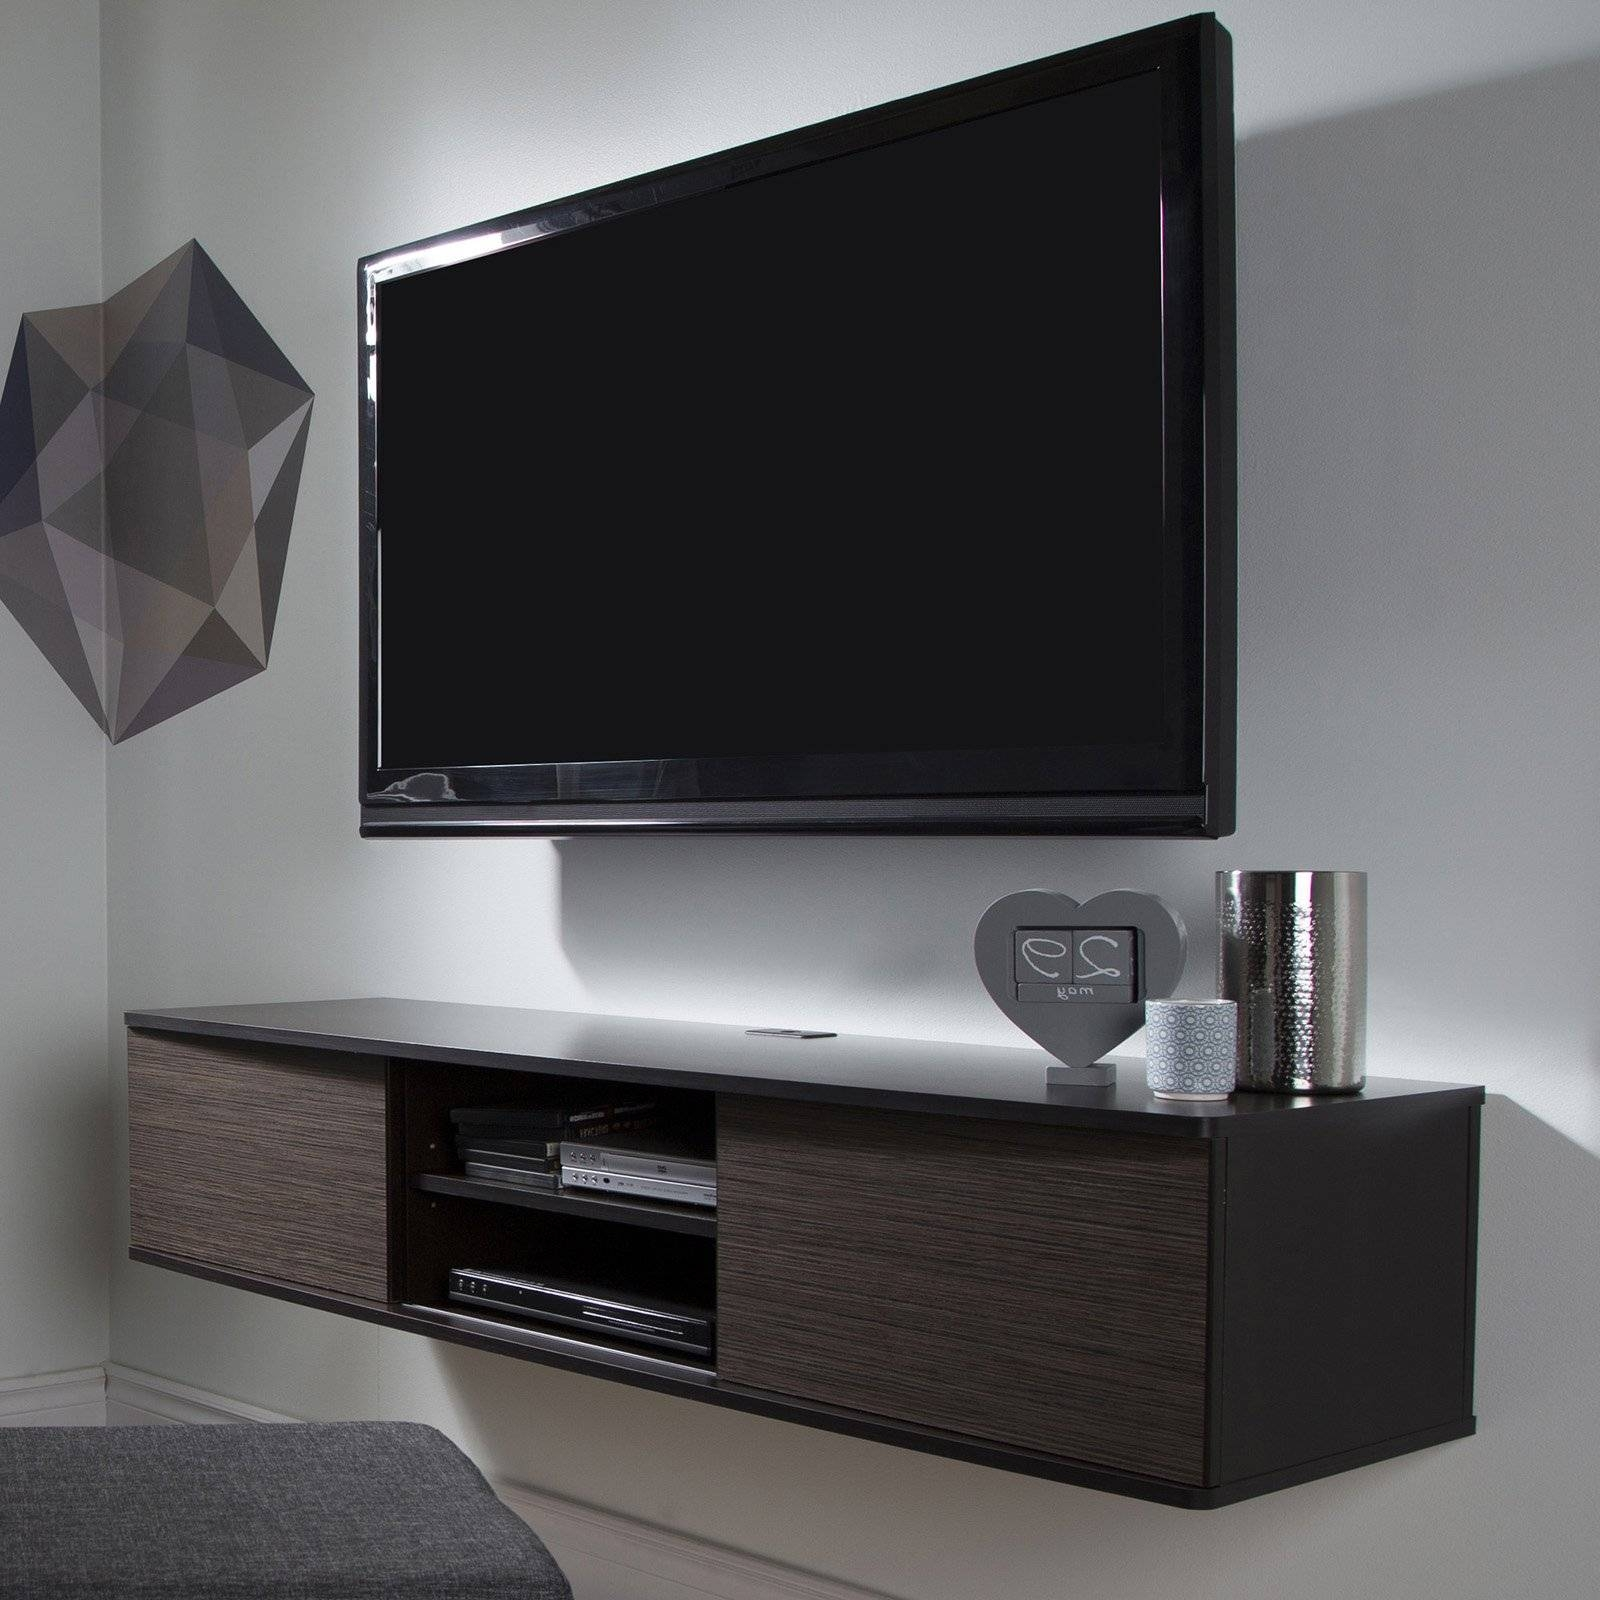 Contemporary & Modern Tv Stands | Hayneedle with regard to Modern Contemporary Tv Stands (Image 7 of 15)